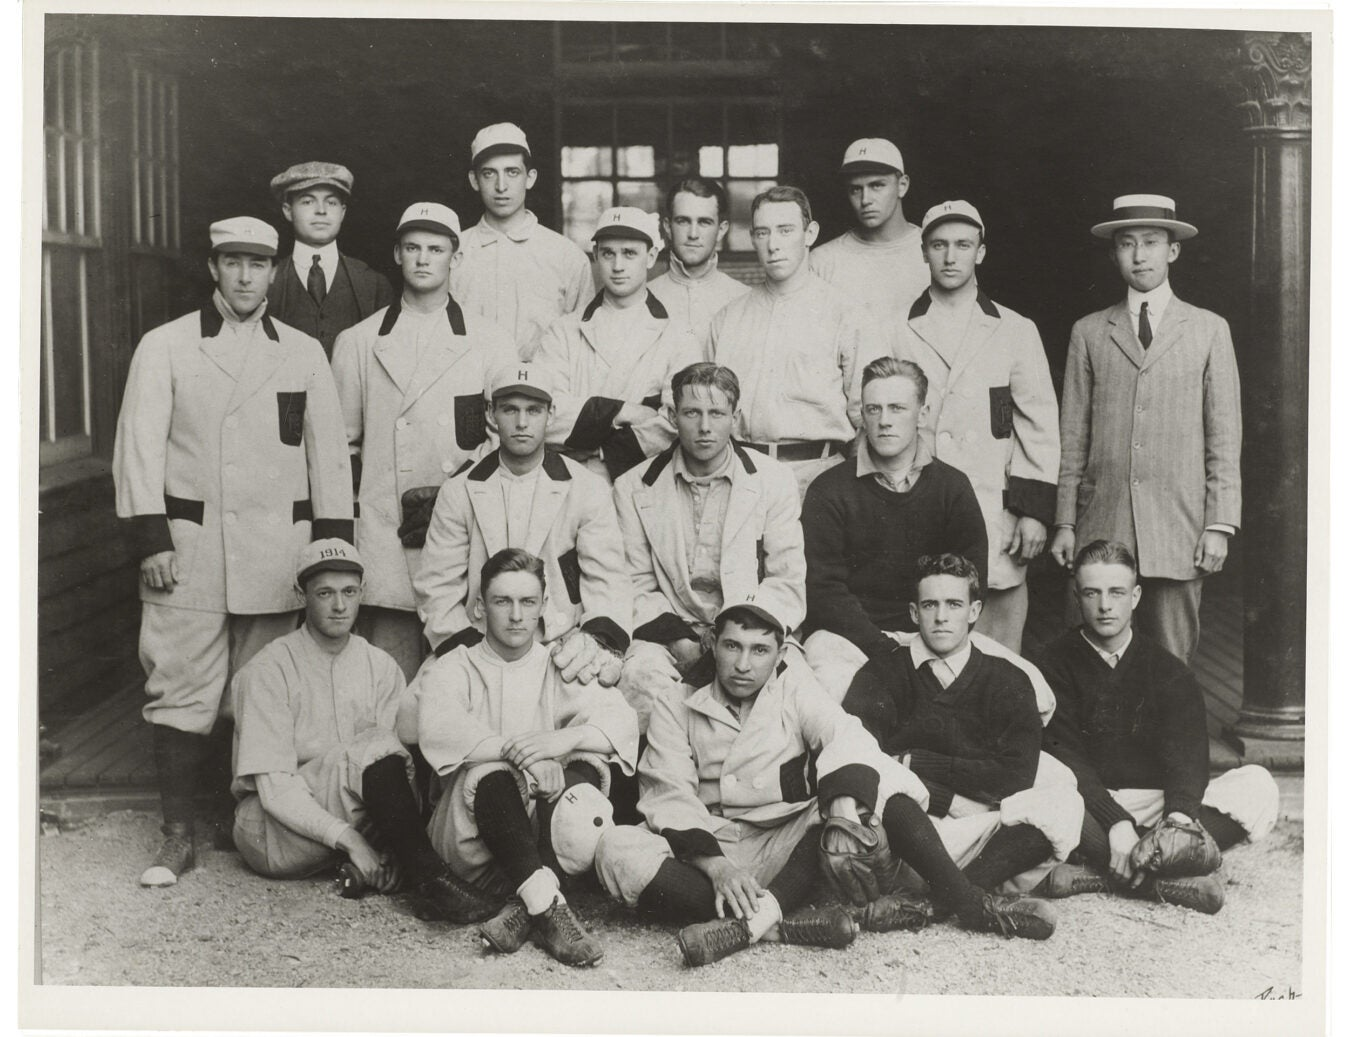 Harvard baseball 1912 team photo.